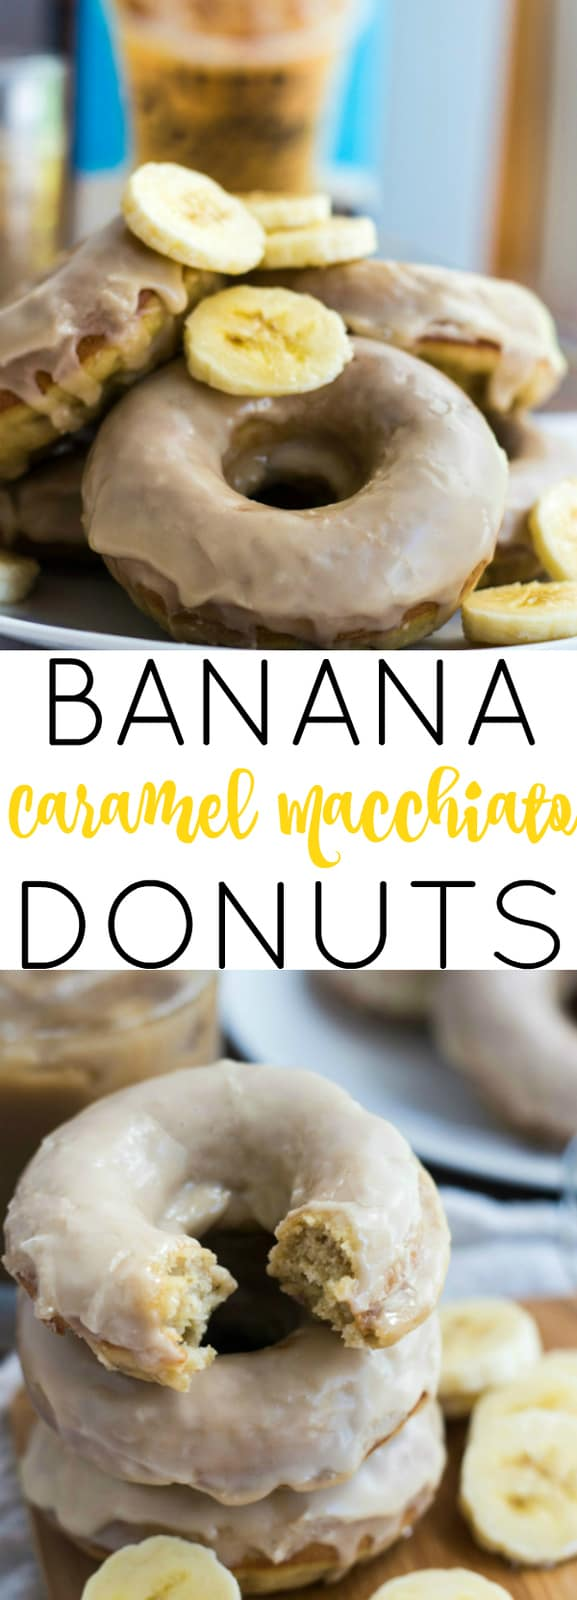 Banana Caramel Macchiato Donuts collage with words in middle